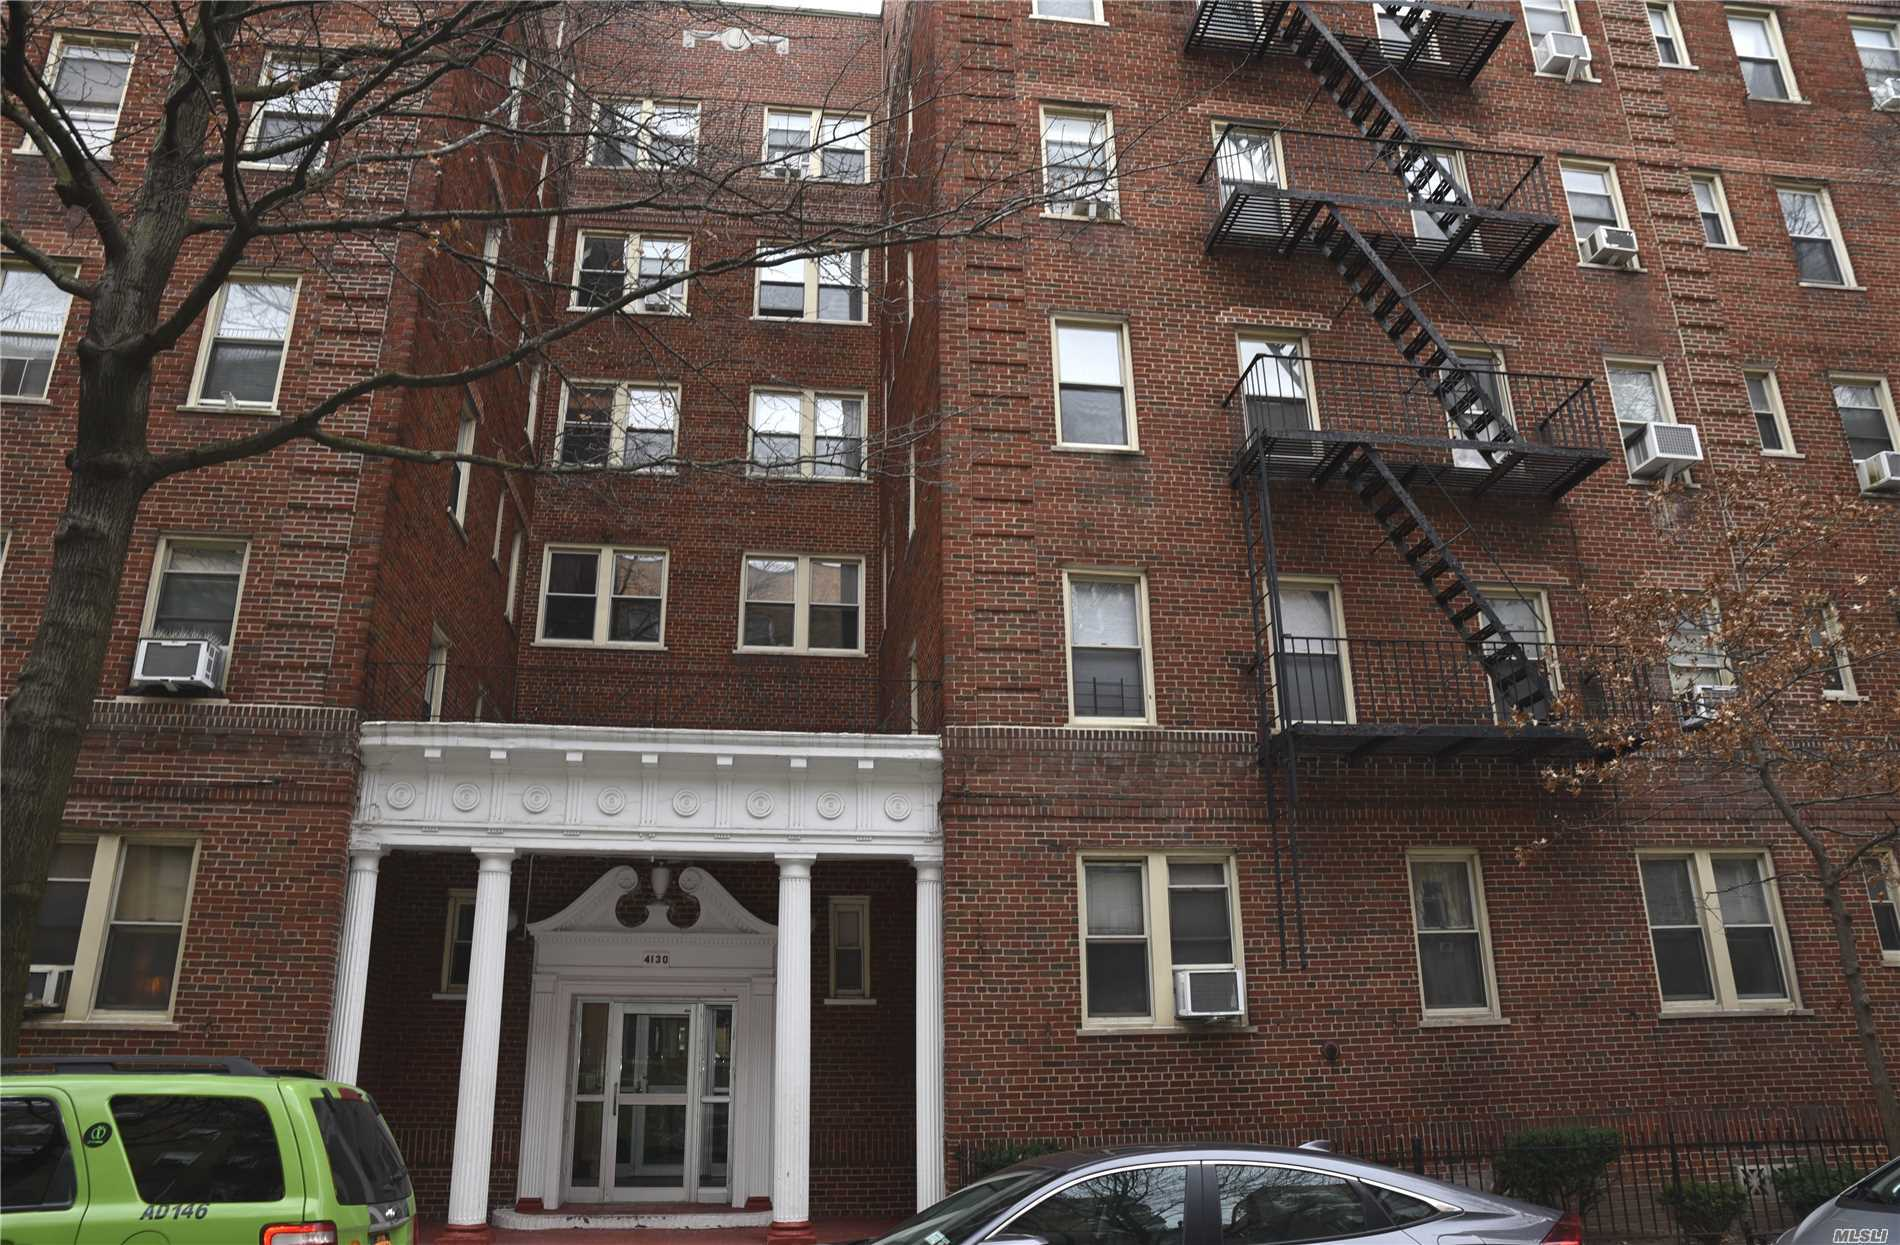 Nice Huge Alcove Studio, Open Layout High-ceiling, Quiet Tree-line Sunnyside Gardens, Living/Dining Room, Foyer, Eat In Kitchen, Spacious, Laundry/Super On Site. Polished Hardwood Flooring, Newly Painted Walls, 4th Floor, 2 elevators, Heat , Water, Sewage Included. 1.5 block, 5min walk to #7 Subway/Bus, 46th/Bliss Streets. Prime Location, Near ALL. Partially furnished - DInette, sofa, wall units, lamps, A/C, curtains, etc